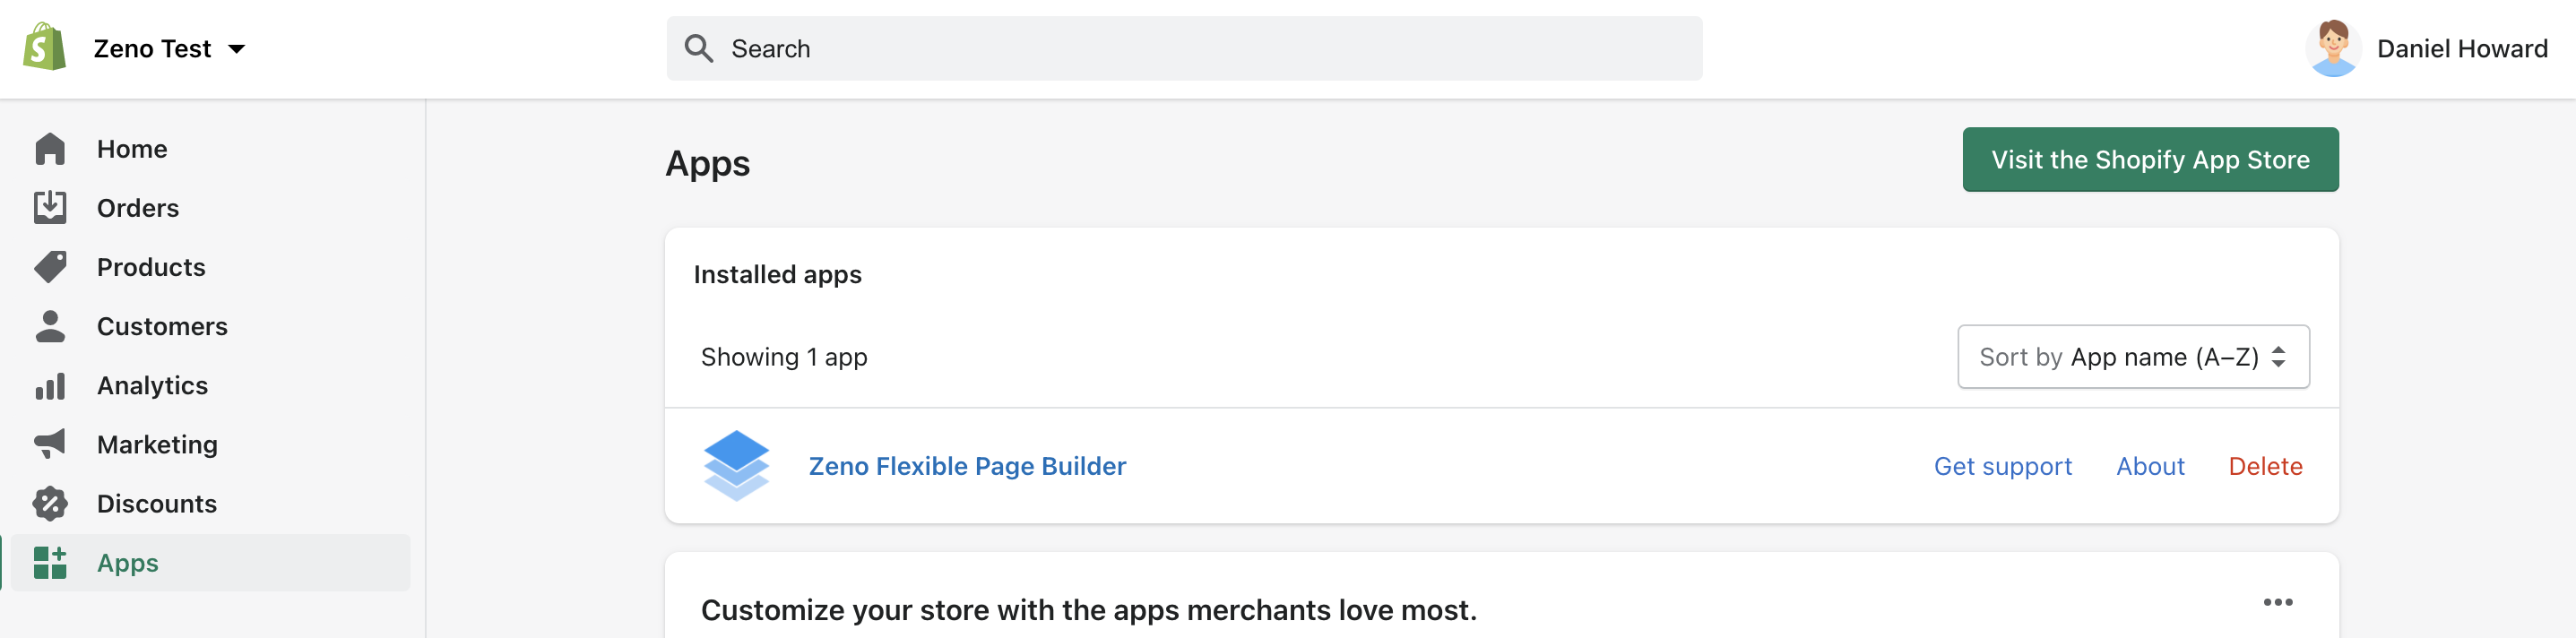 Zeno Page Builder for Shopify